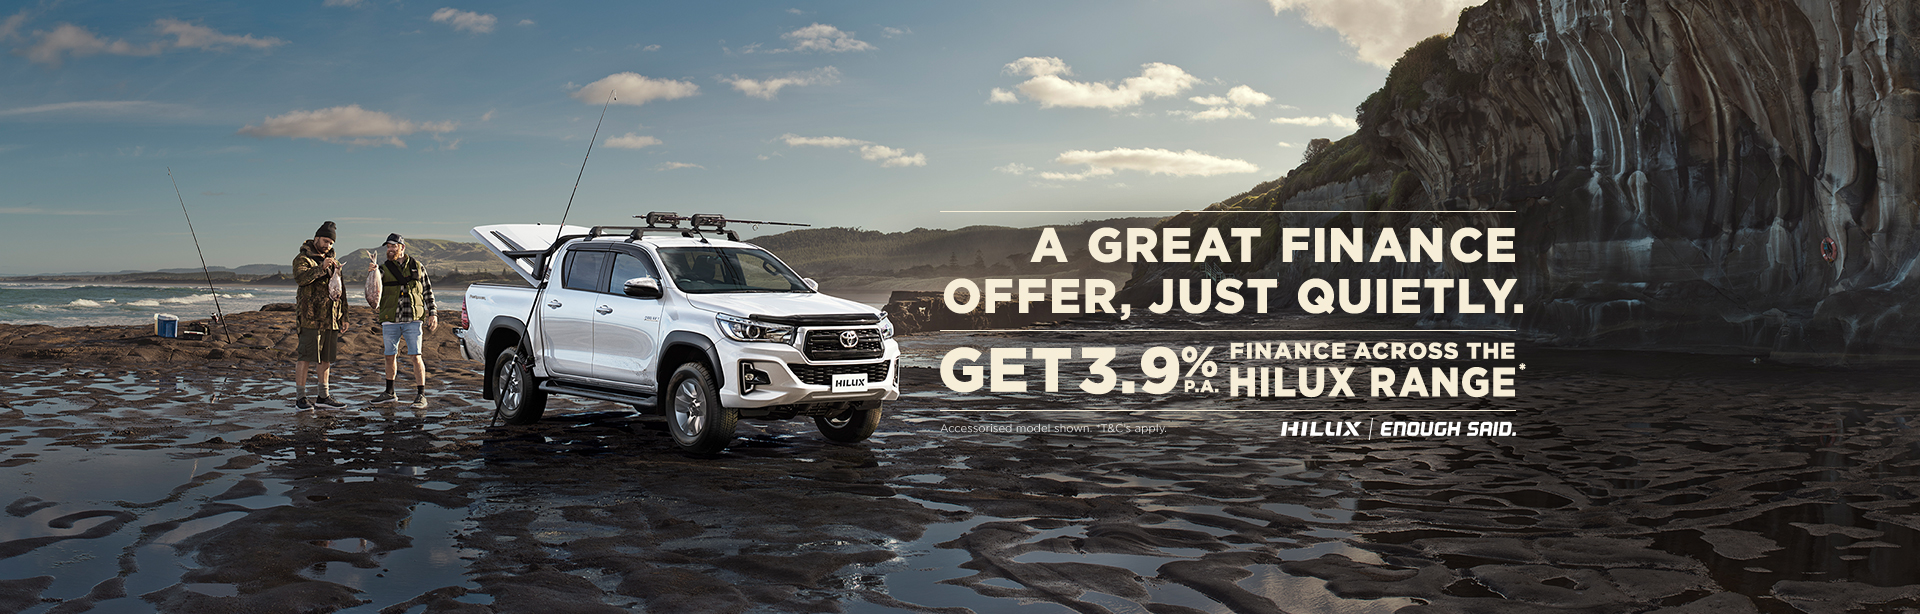 Q4_Hilux_Finance_PromotionHero_1920x614